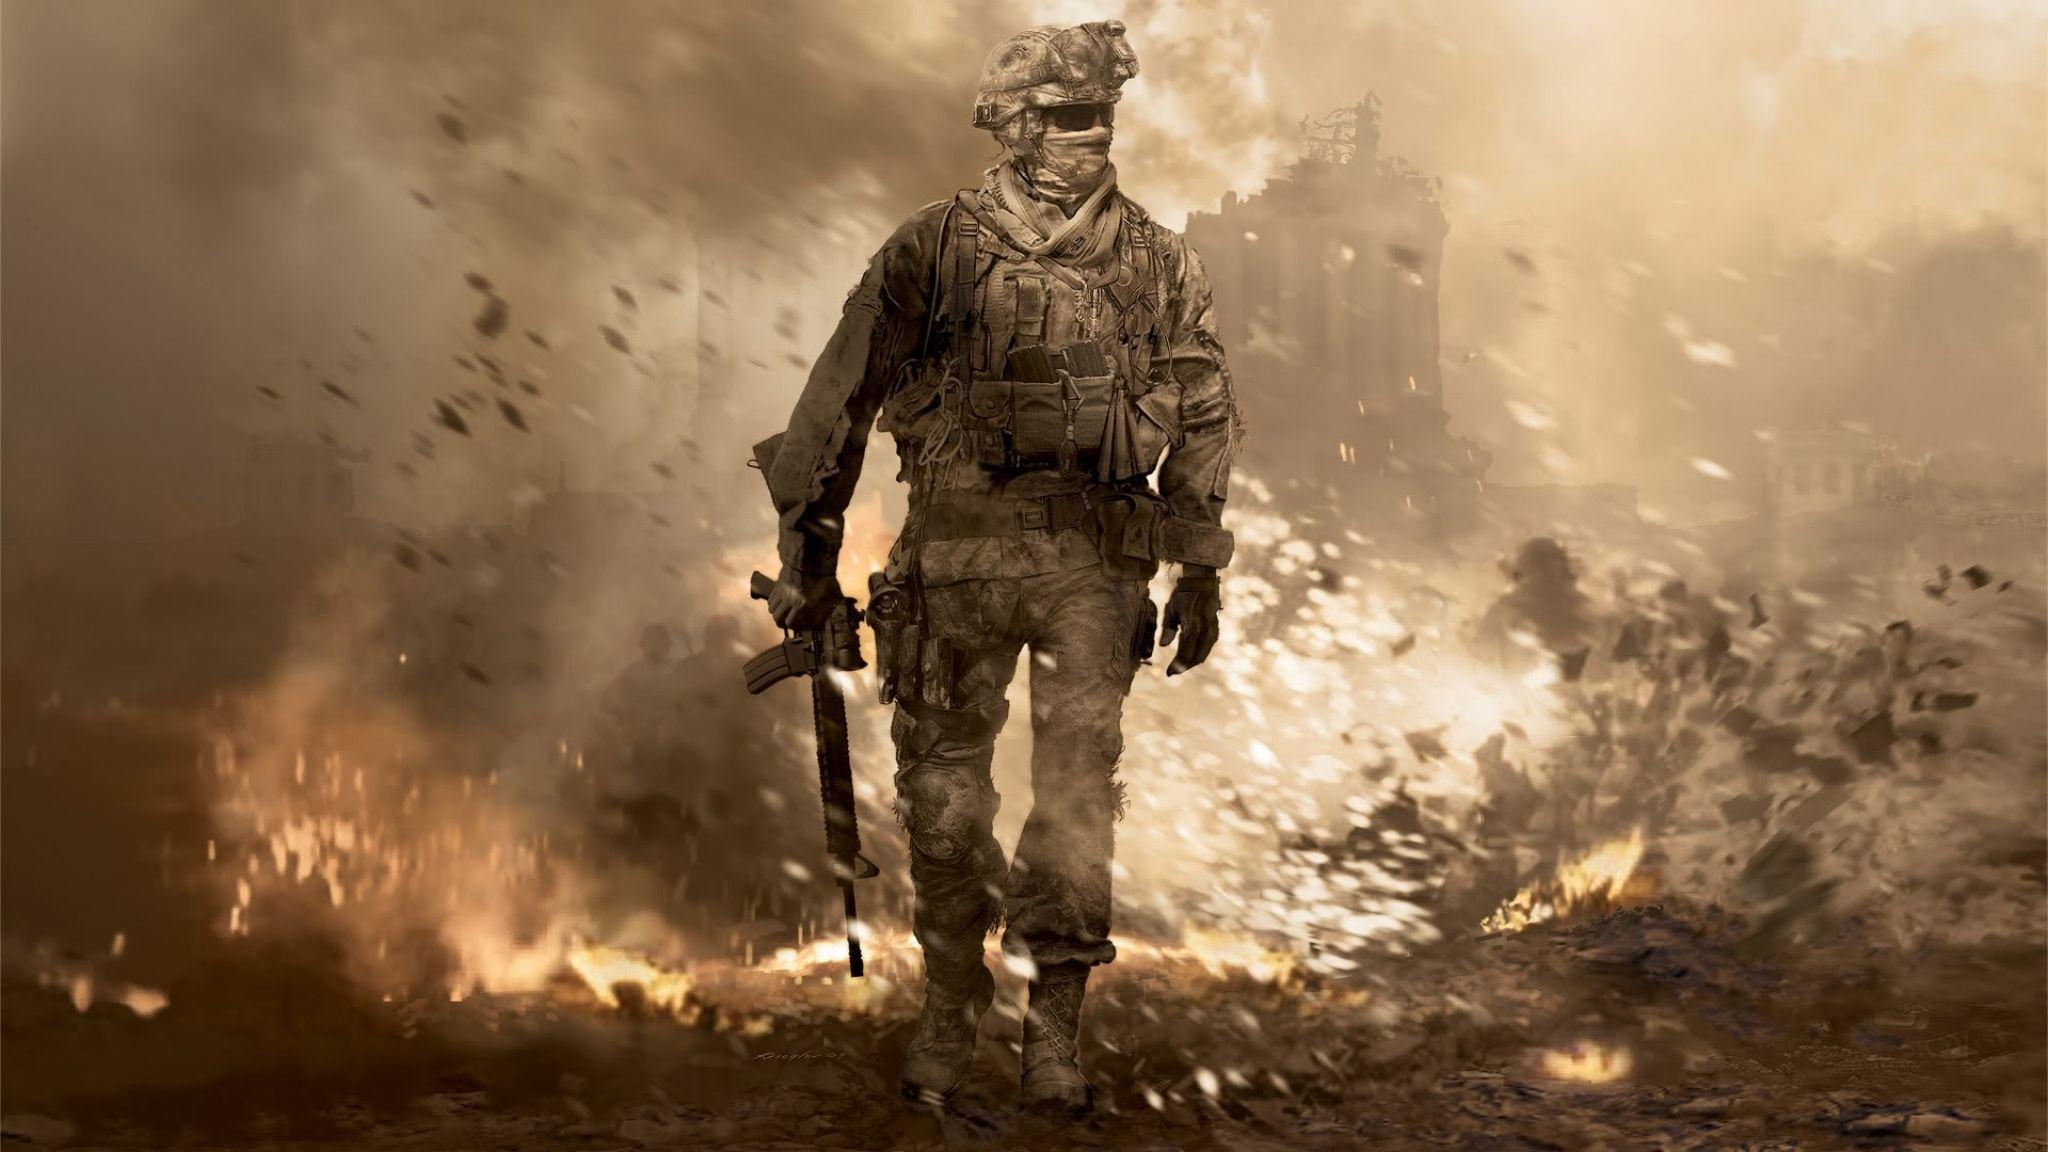 HD Call of duty Wallpapers HD, Desktop Backgrounds 2048x1152 ...